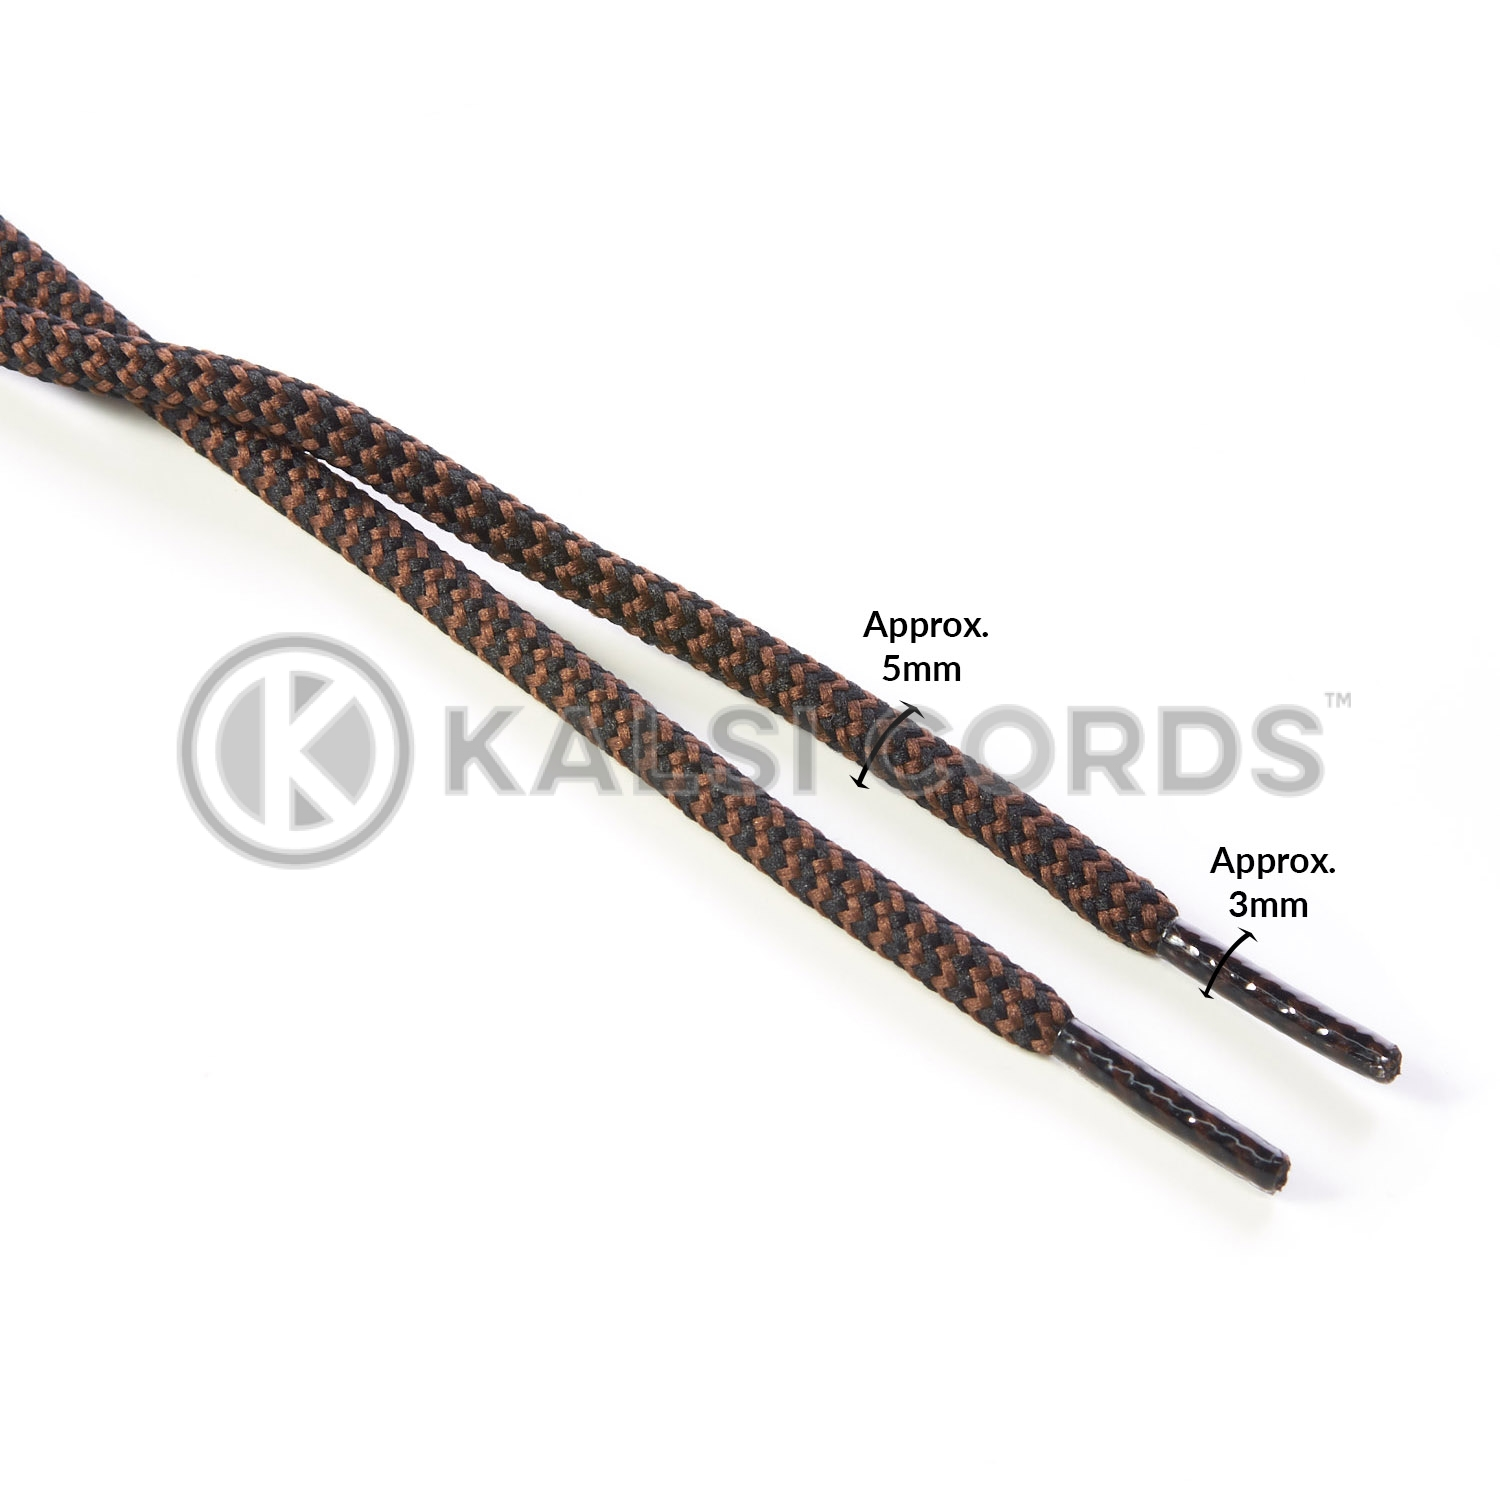 T621 5mm Round Cord Shoe Laces Black York Brown Herringbone Pattern Kids Trainers Adults Hiking Walking Boots Kalsi Cords